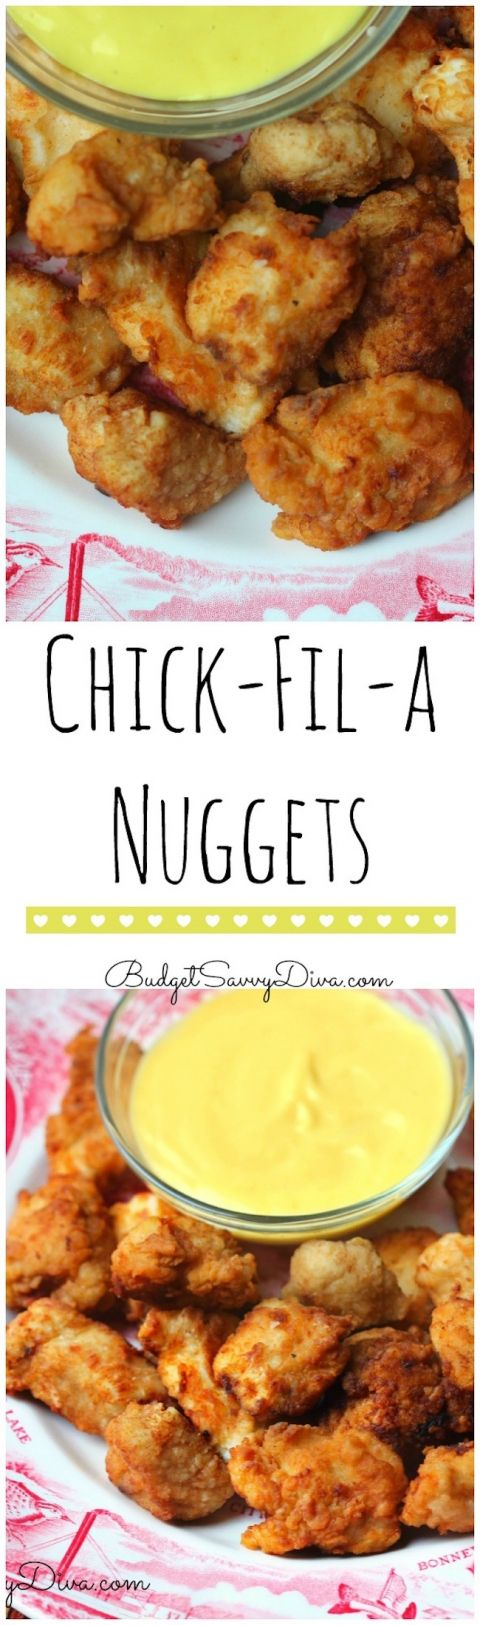 Copy Cat Chick Fil A Nuggets from Budget Savvy Diva